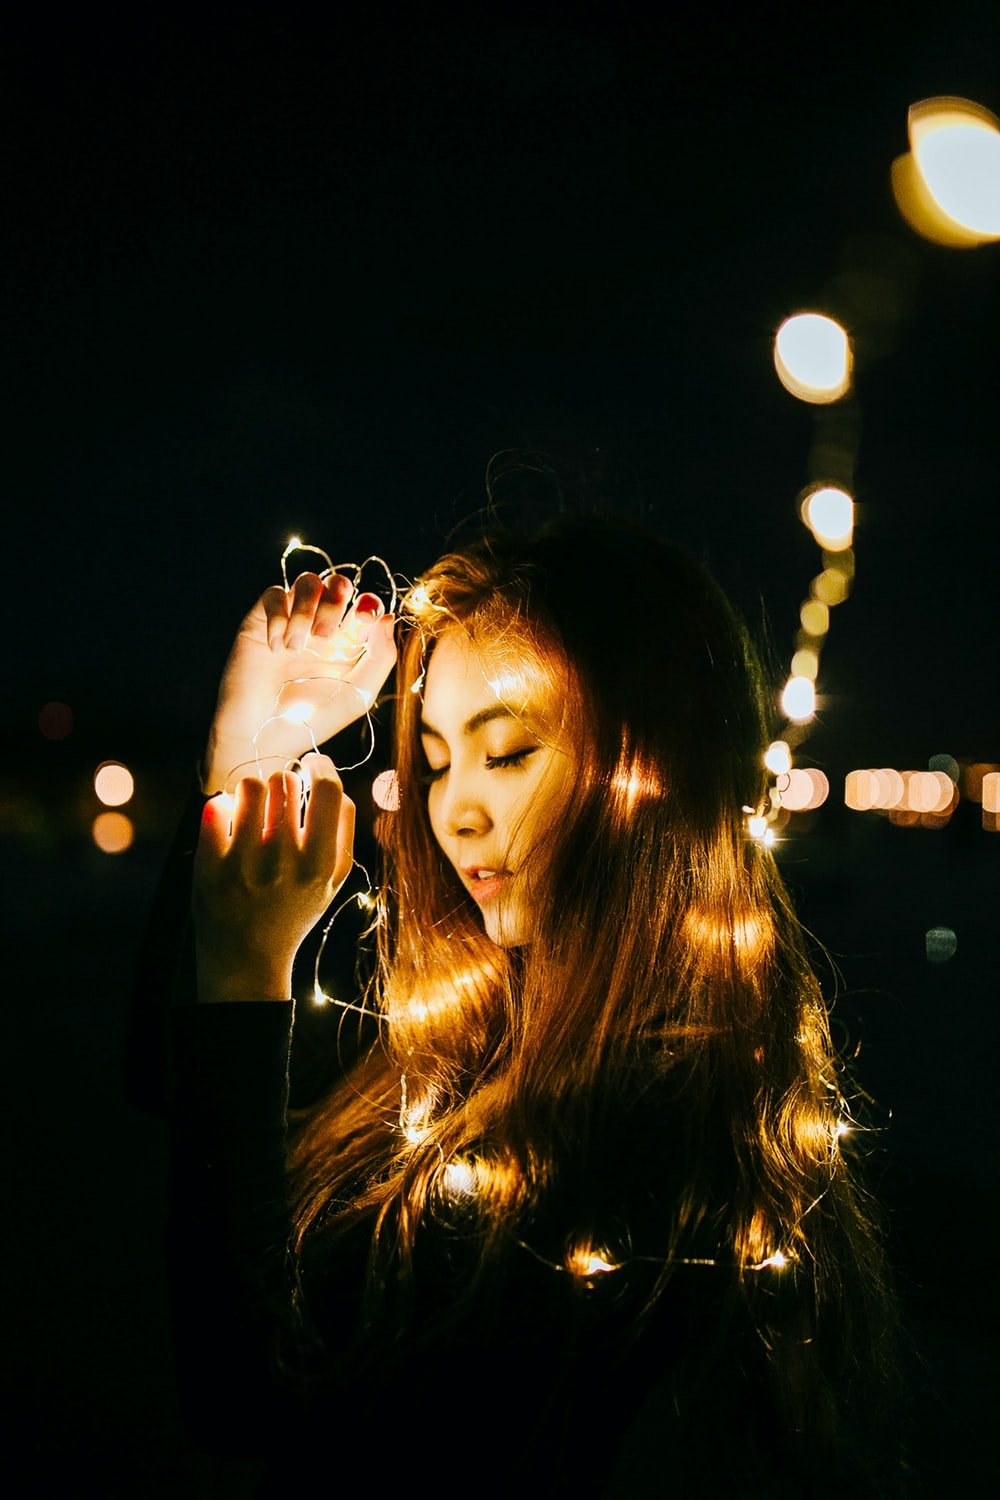 bokeh photography of woman holding string lights